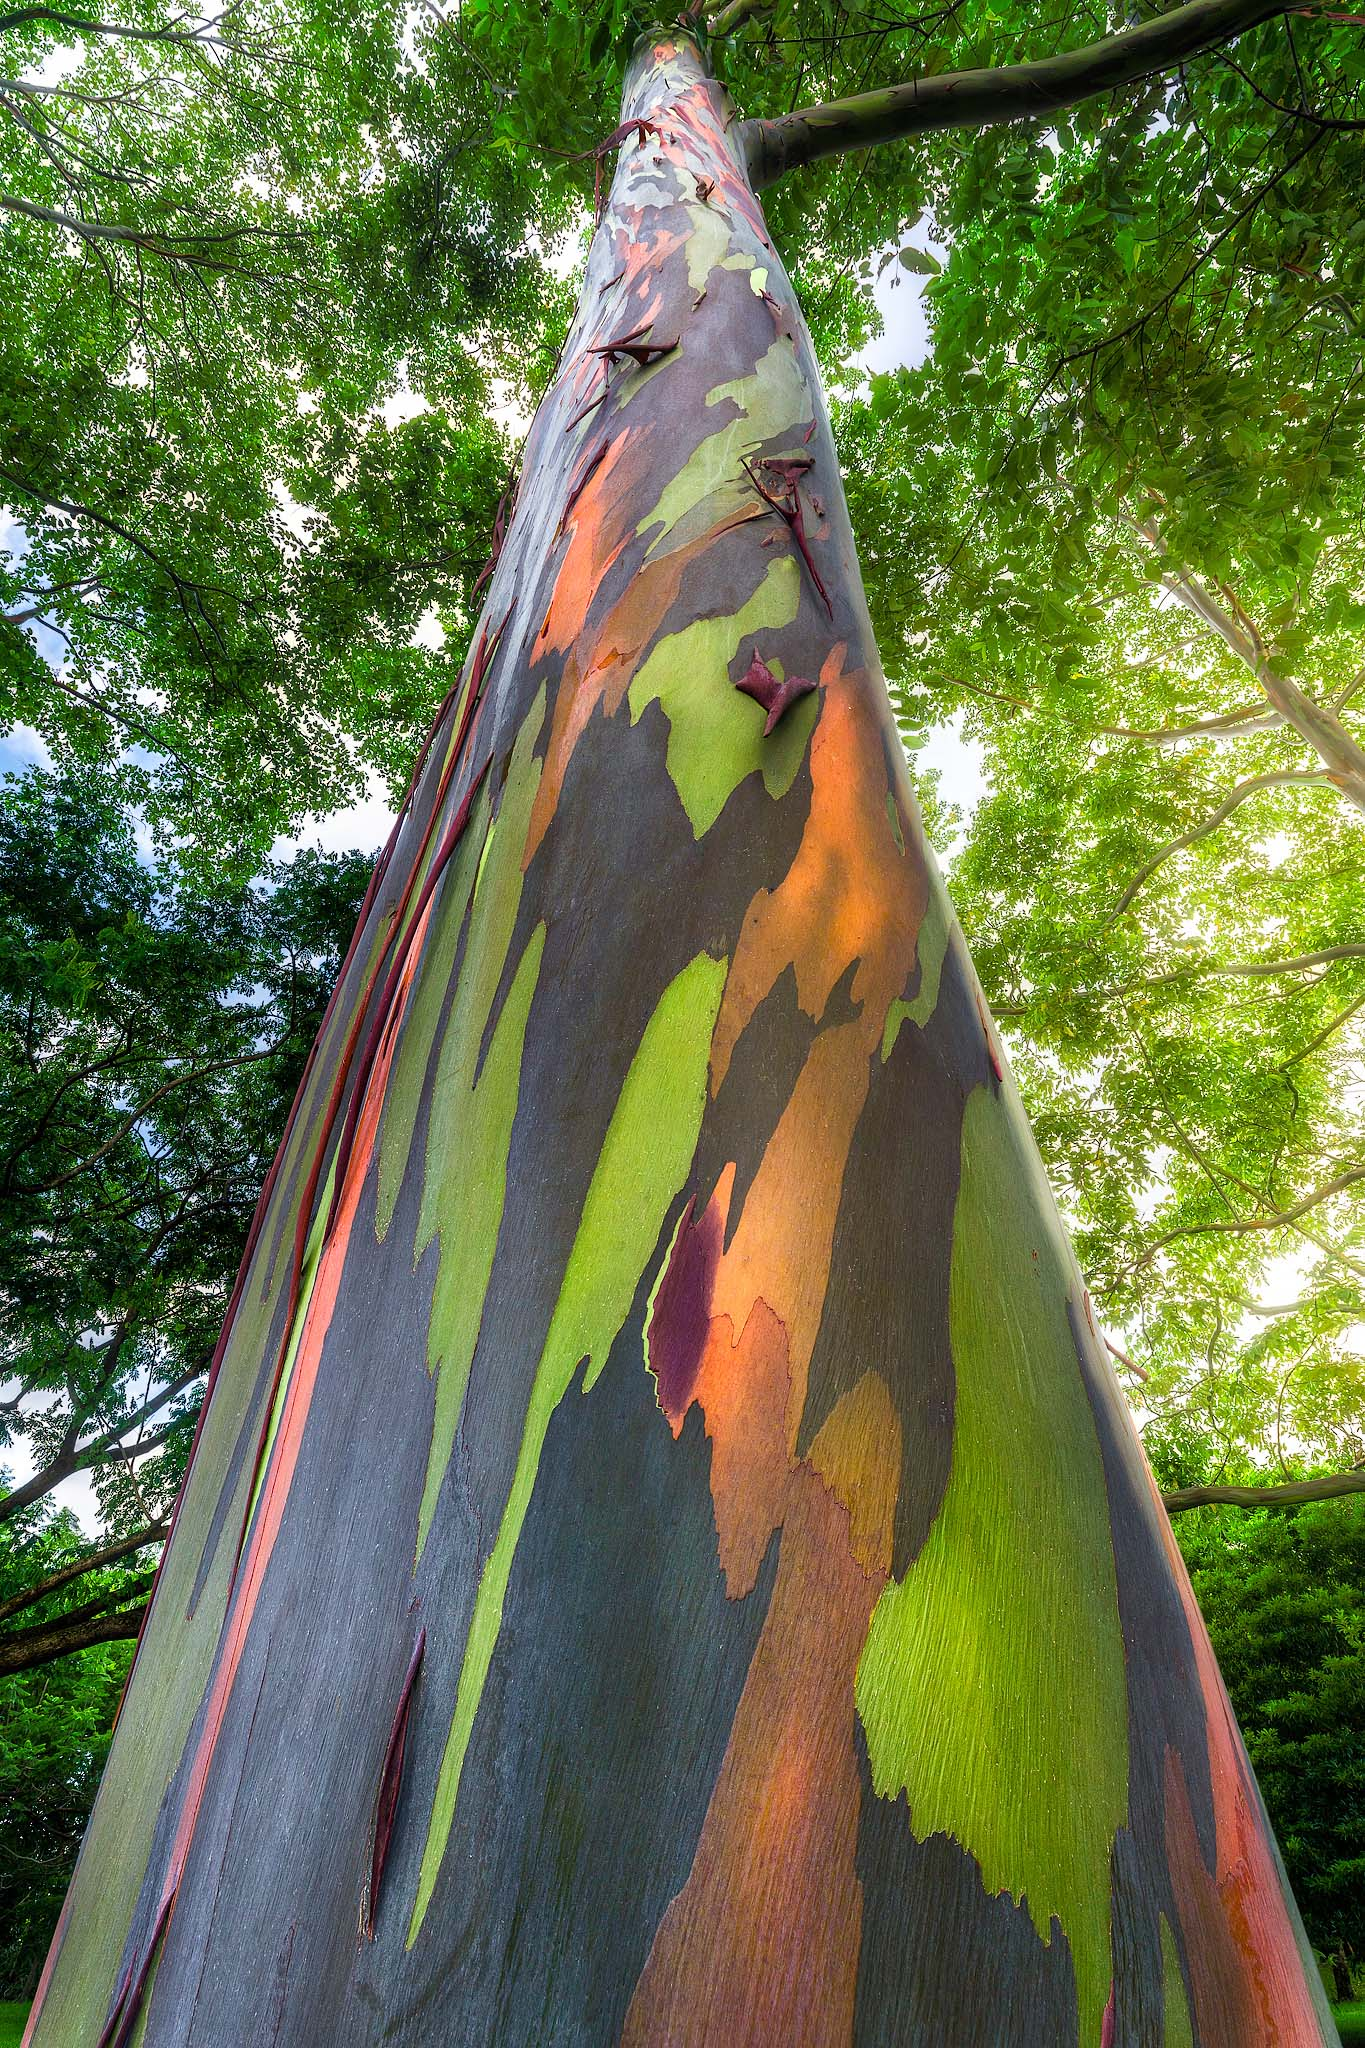 Although they are not native to Hawaii, there are some amazing trees with unbelievable colors scattered throughout the islands...